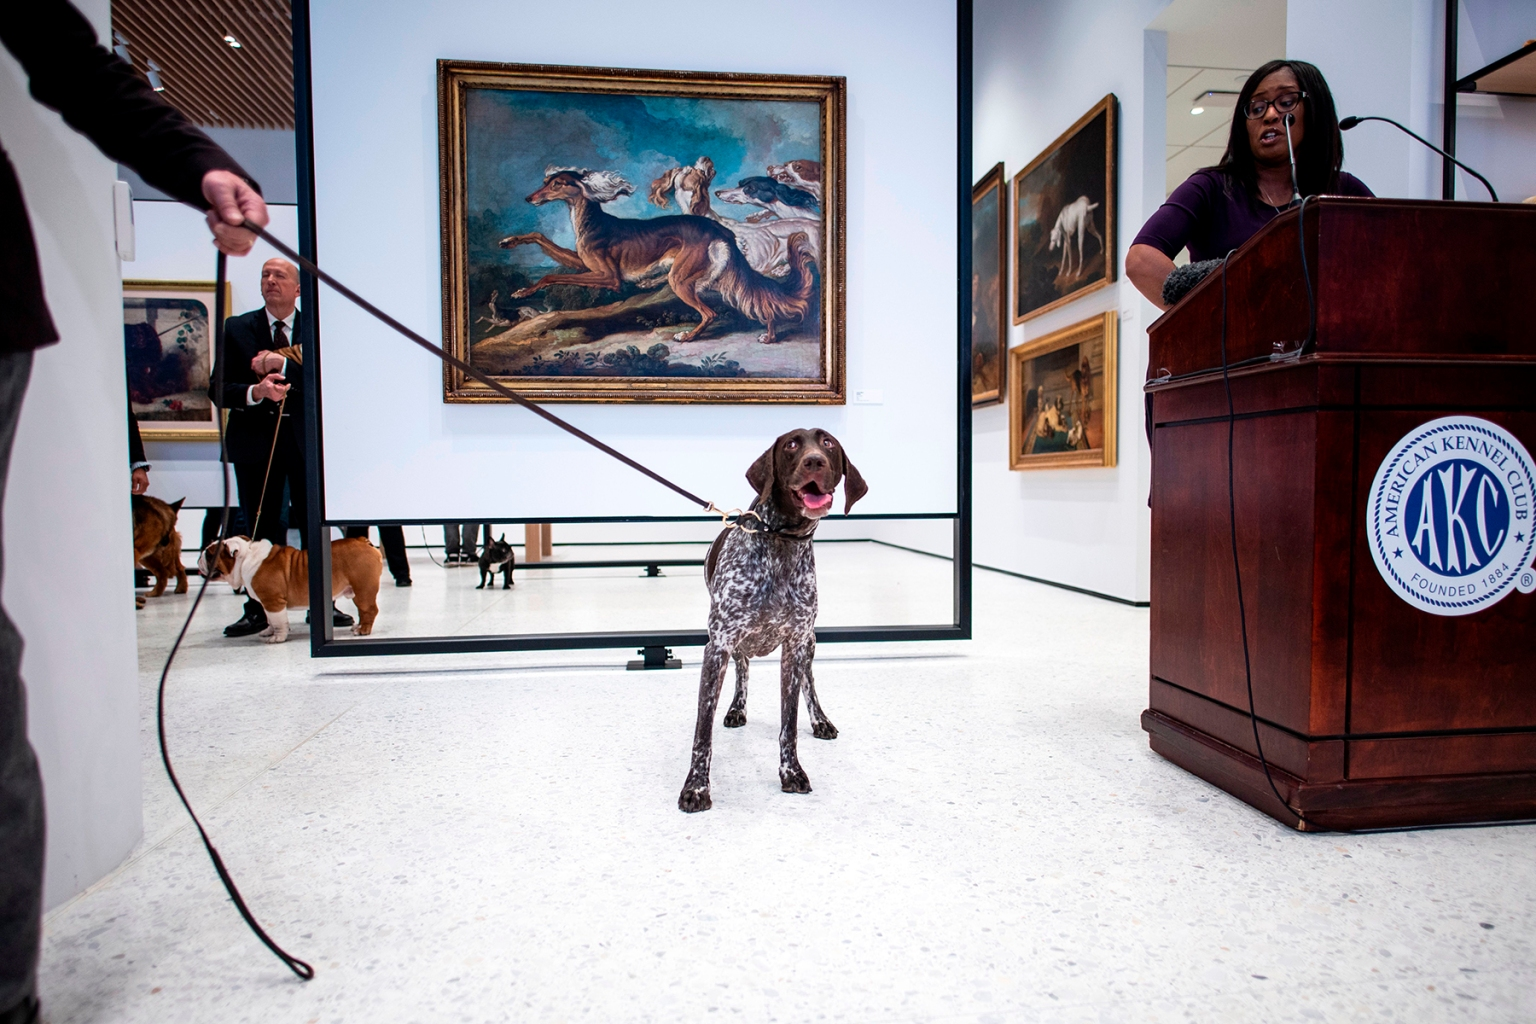 A German shorthaired pointer poses at the American Kennel Club's Museum of the Dog in New York City on March 20 during the announcement of the most popular breed in the United States—Labrador retreivers. JOHANNES EISELE/AFP/Getty Images